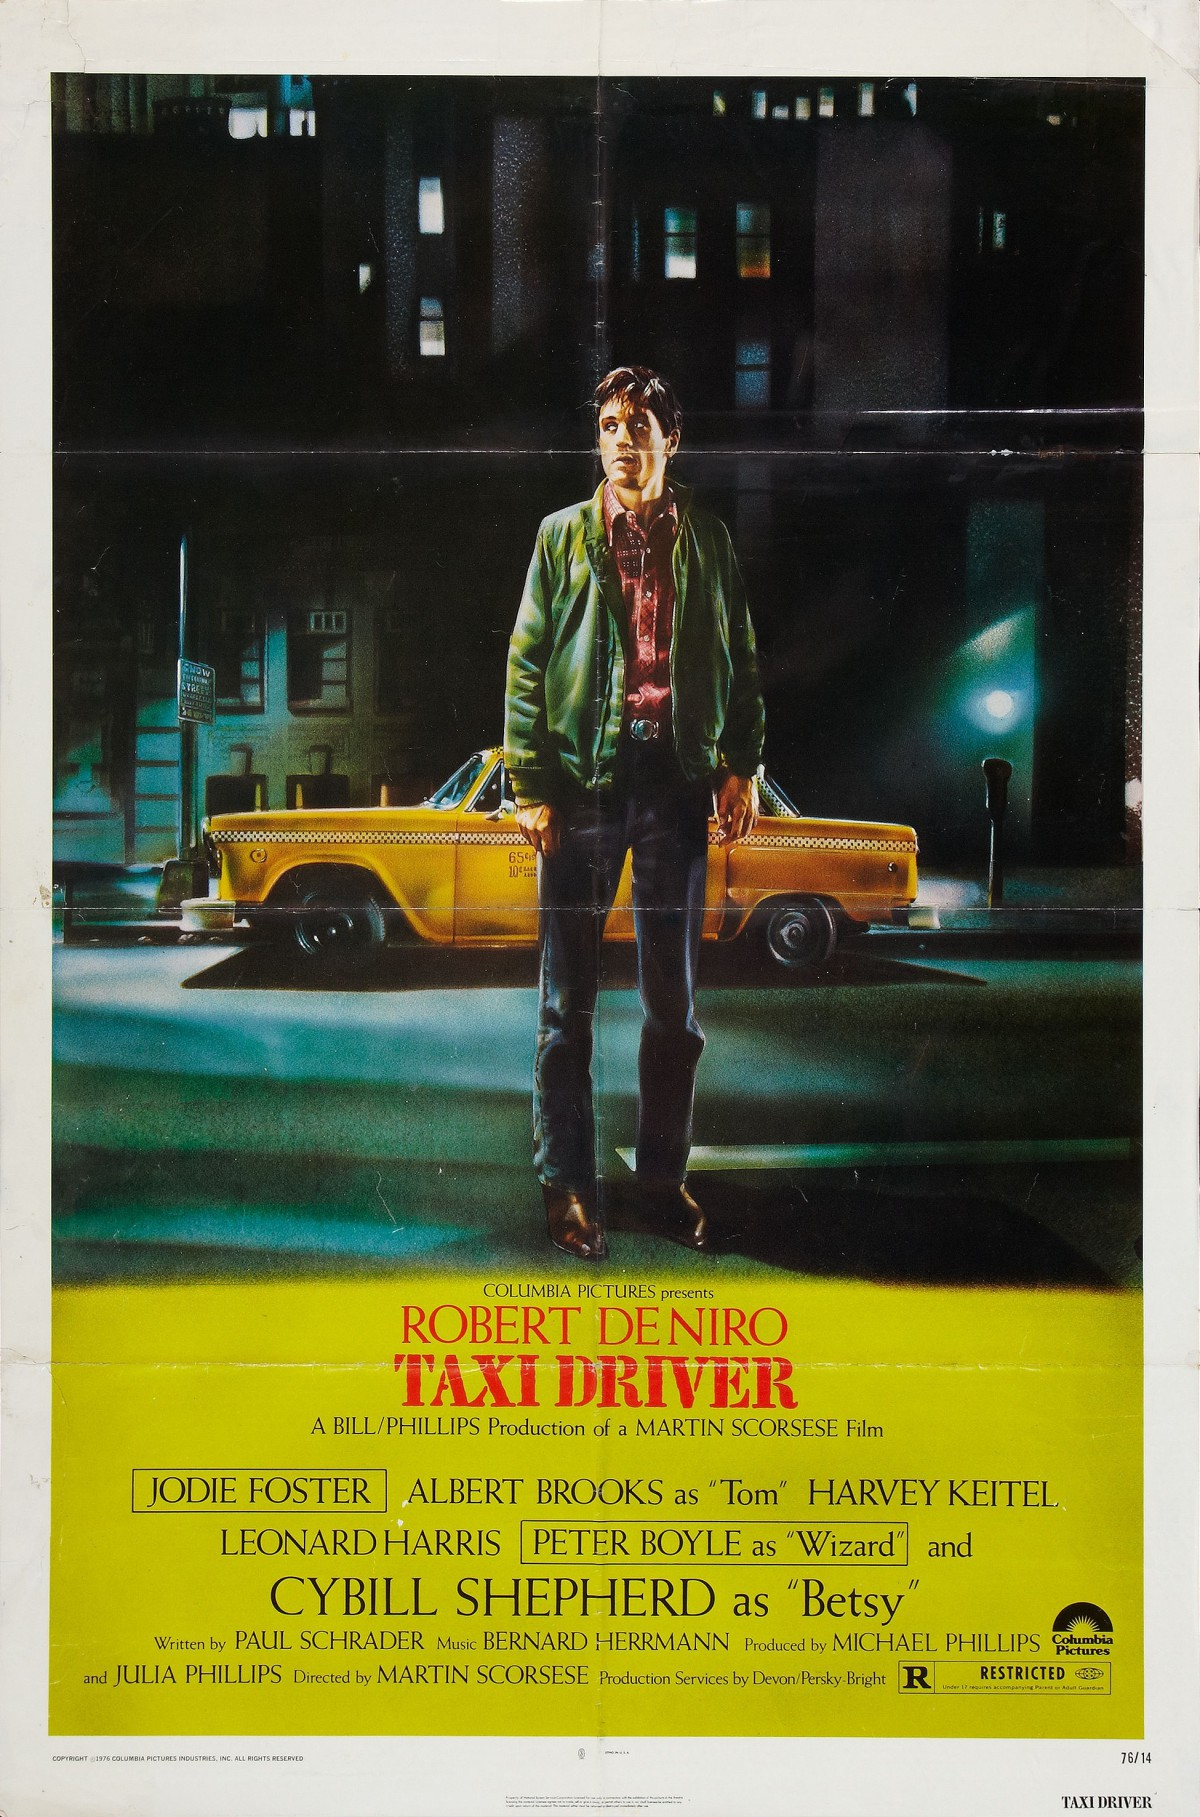 12. Taxi Driver (1976)